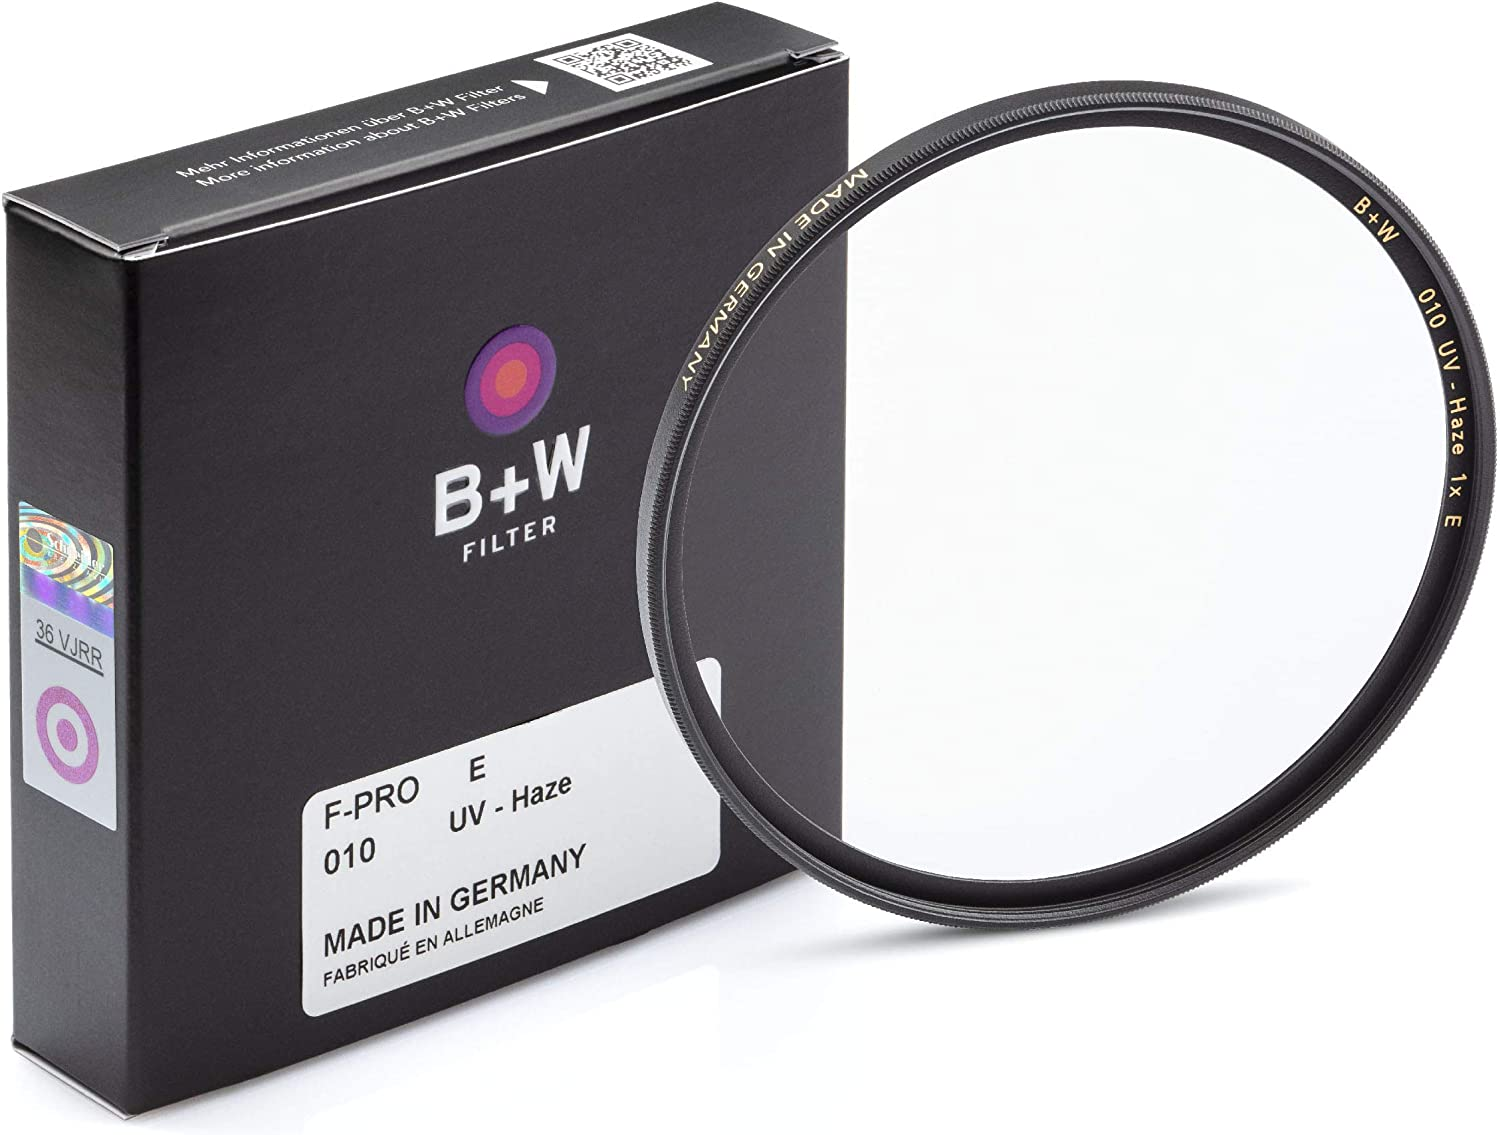 B + W 112mm UV Protection Filter (010) for Camera Lens – Standard Mount (F-PRO), E Coating, 2 Layers Resistant Coating, Photography Filter, 112 mm, Clear Protector